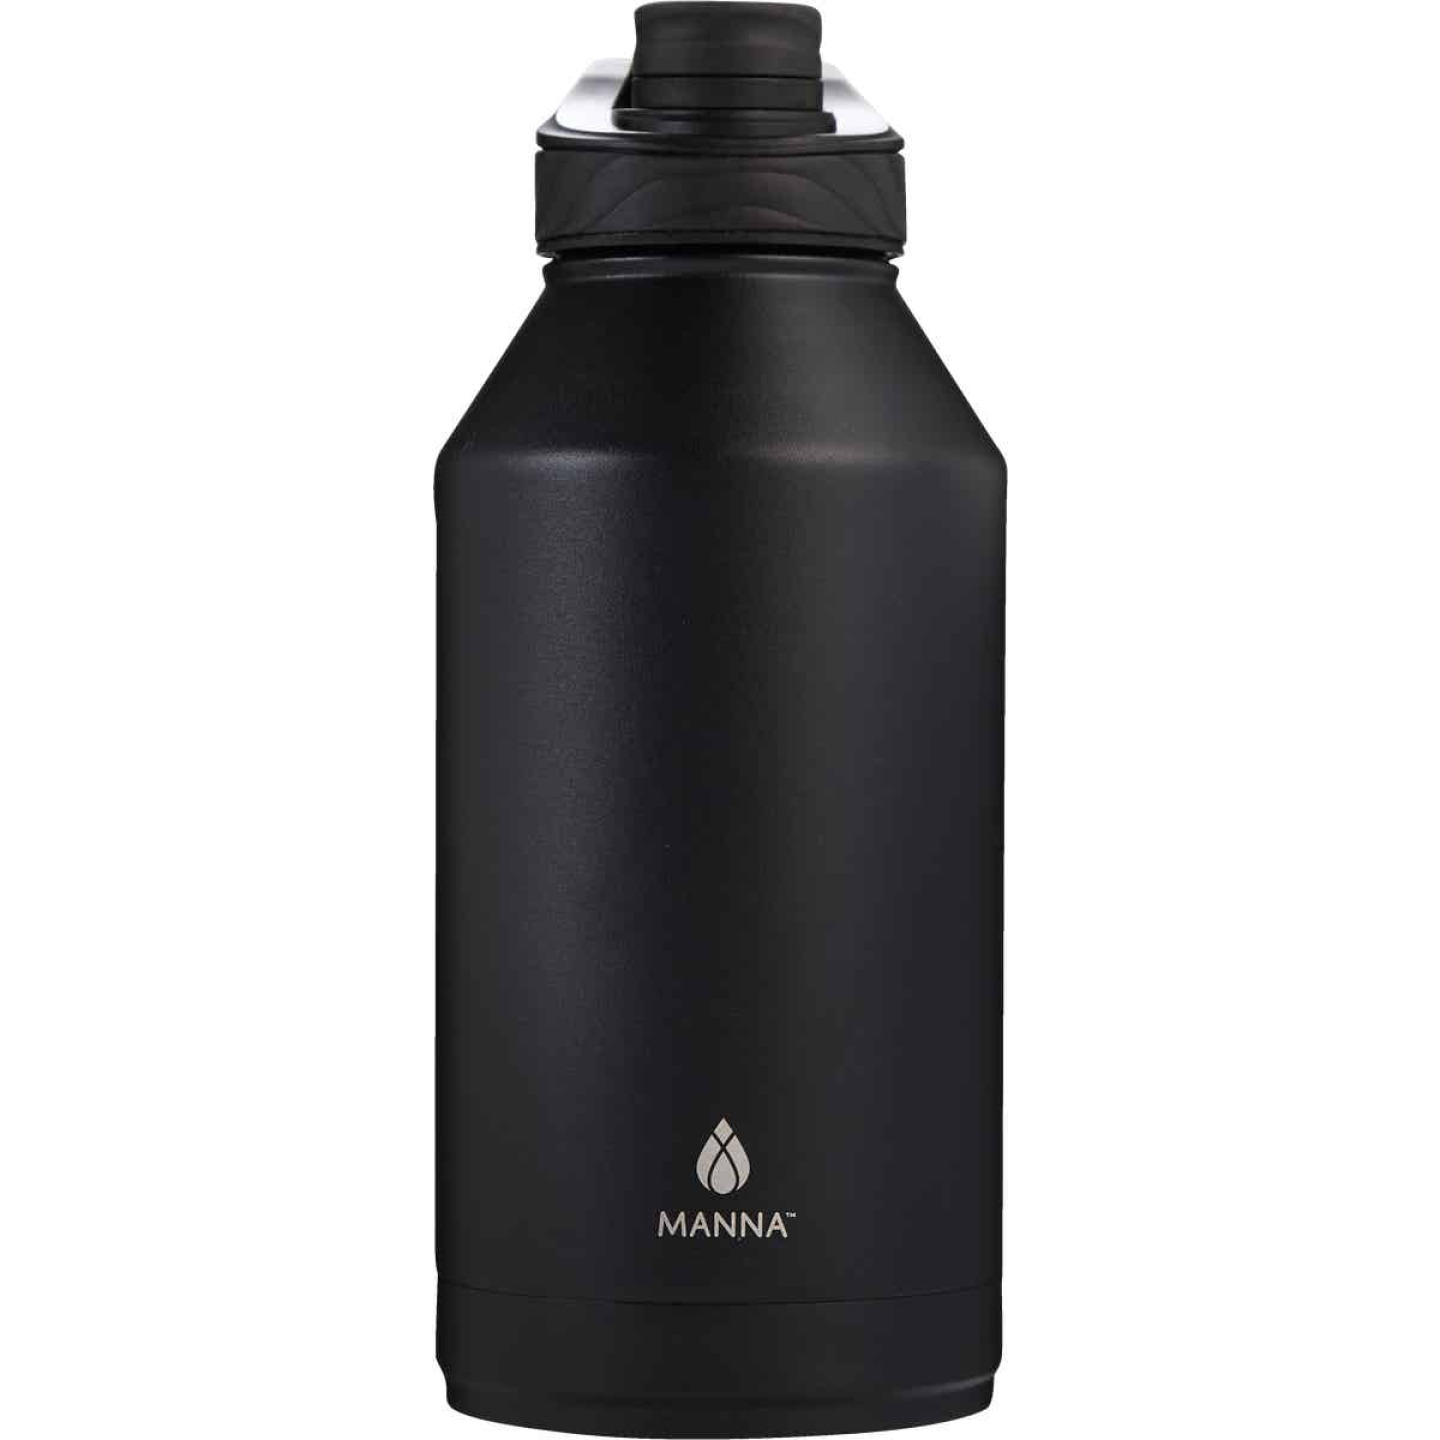 Manna 64 Oz. Sapphire Convoy Insulated Vacuum Bottle Image 1